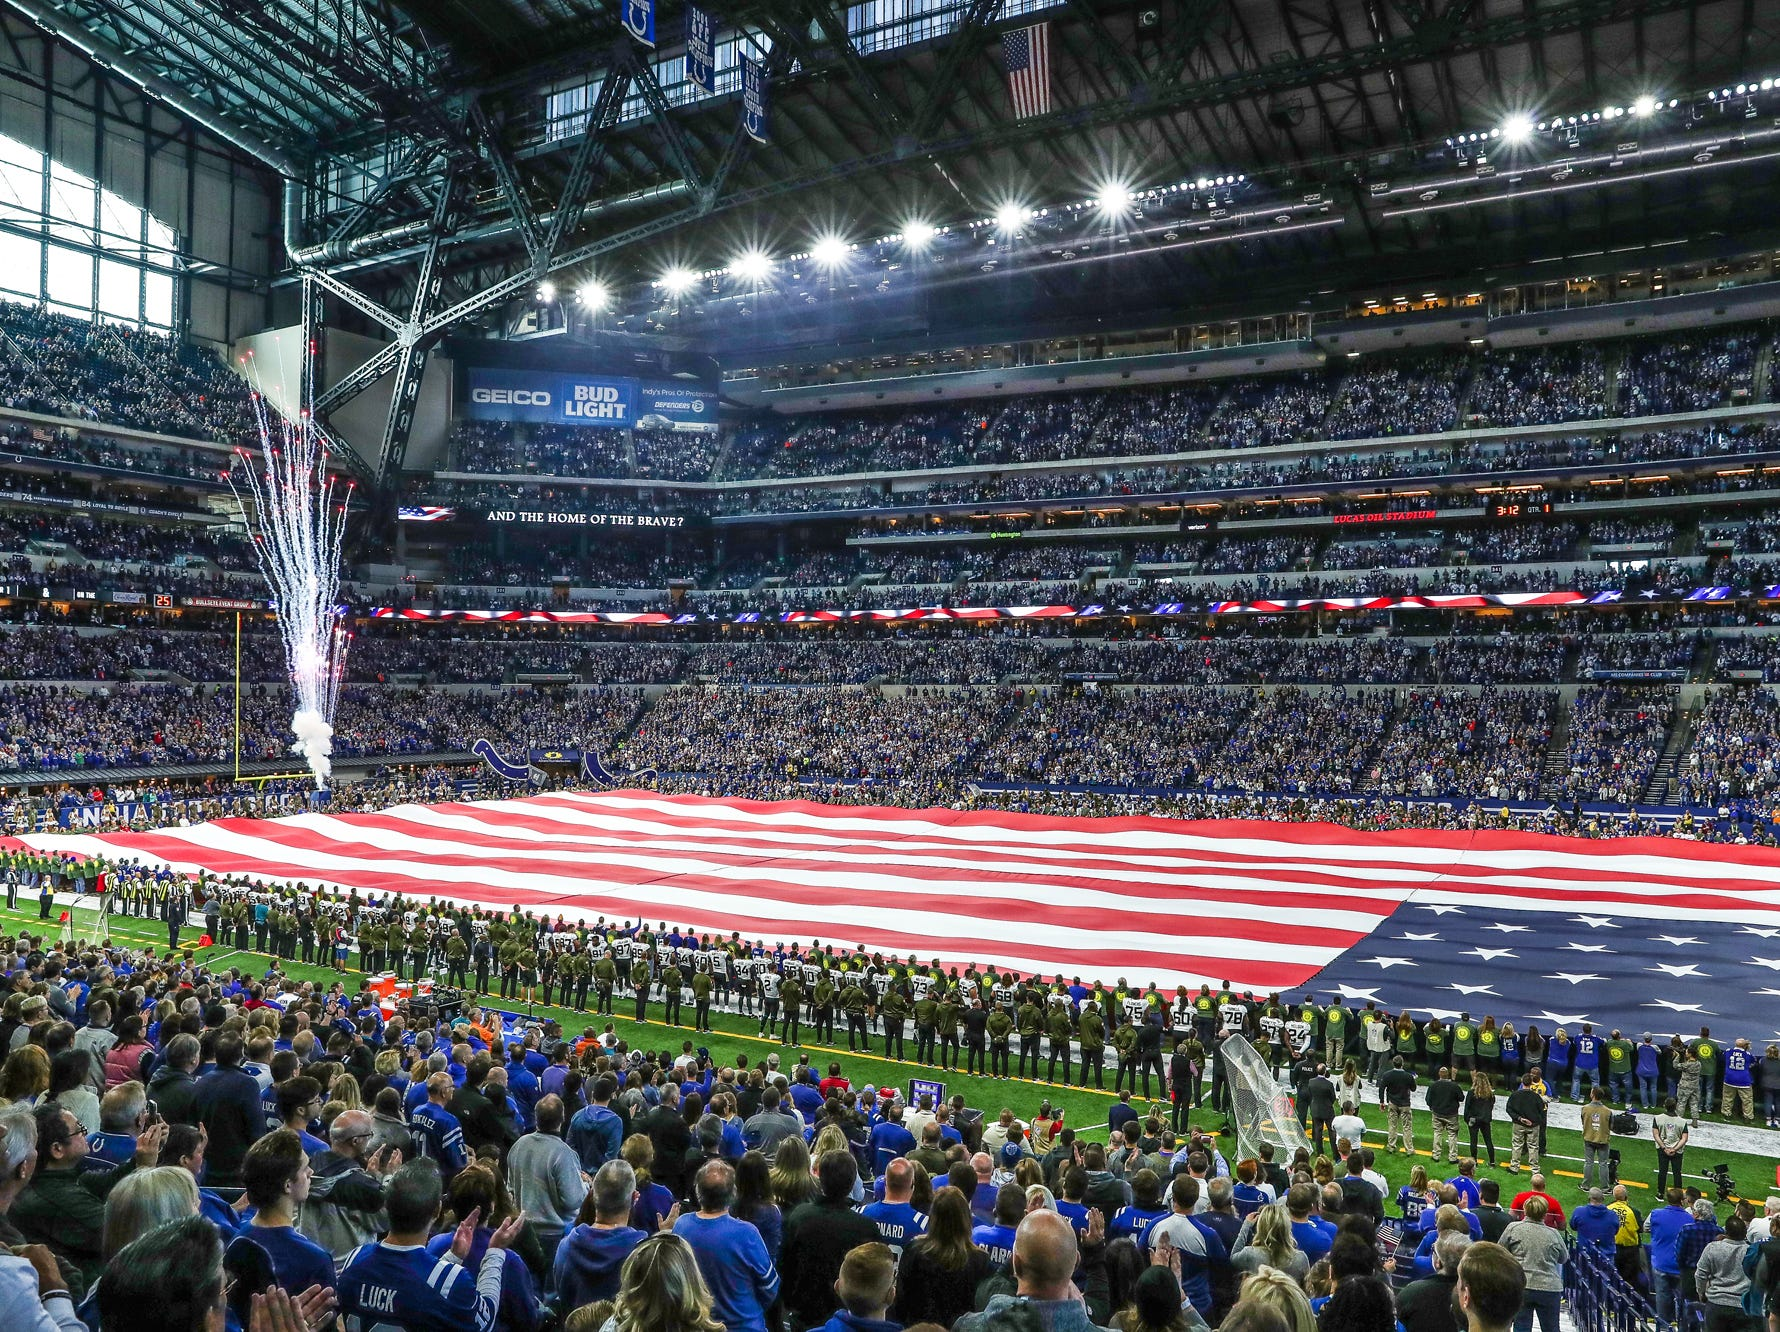 The national anthem is sung before the Indianapolis Colts game against the Jacksonville Jaguars at Lucas Oil Stadium on Sunday, Nov. 11, 2018.